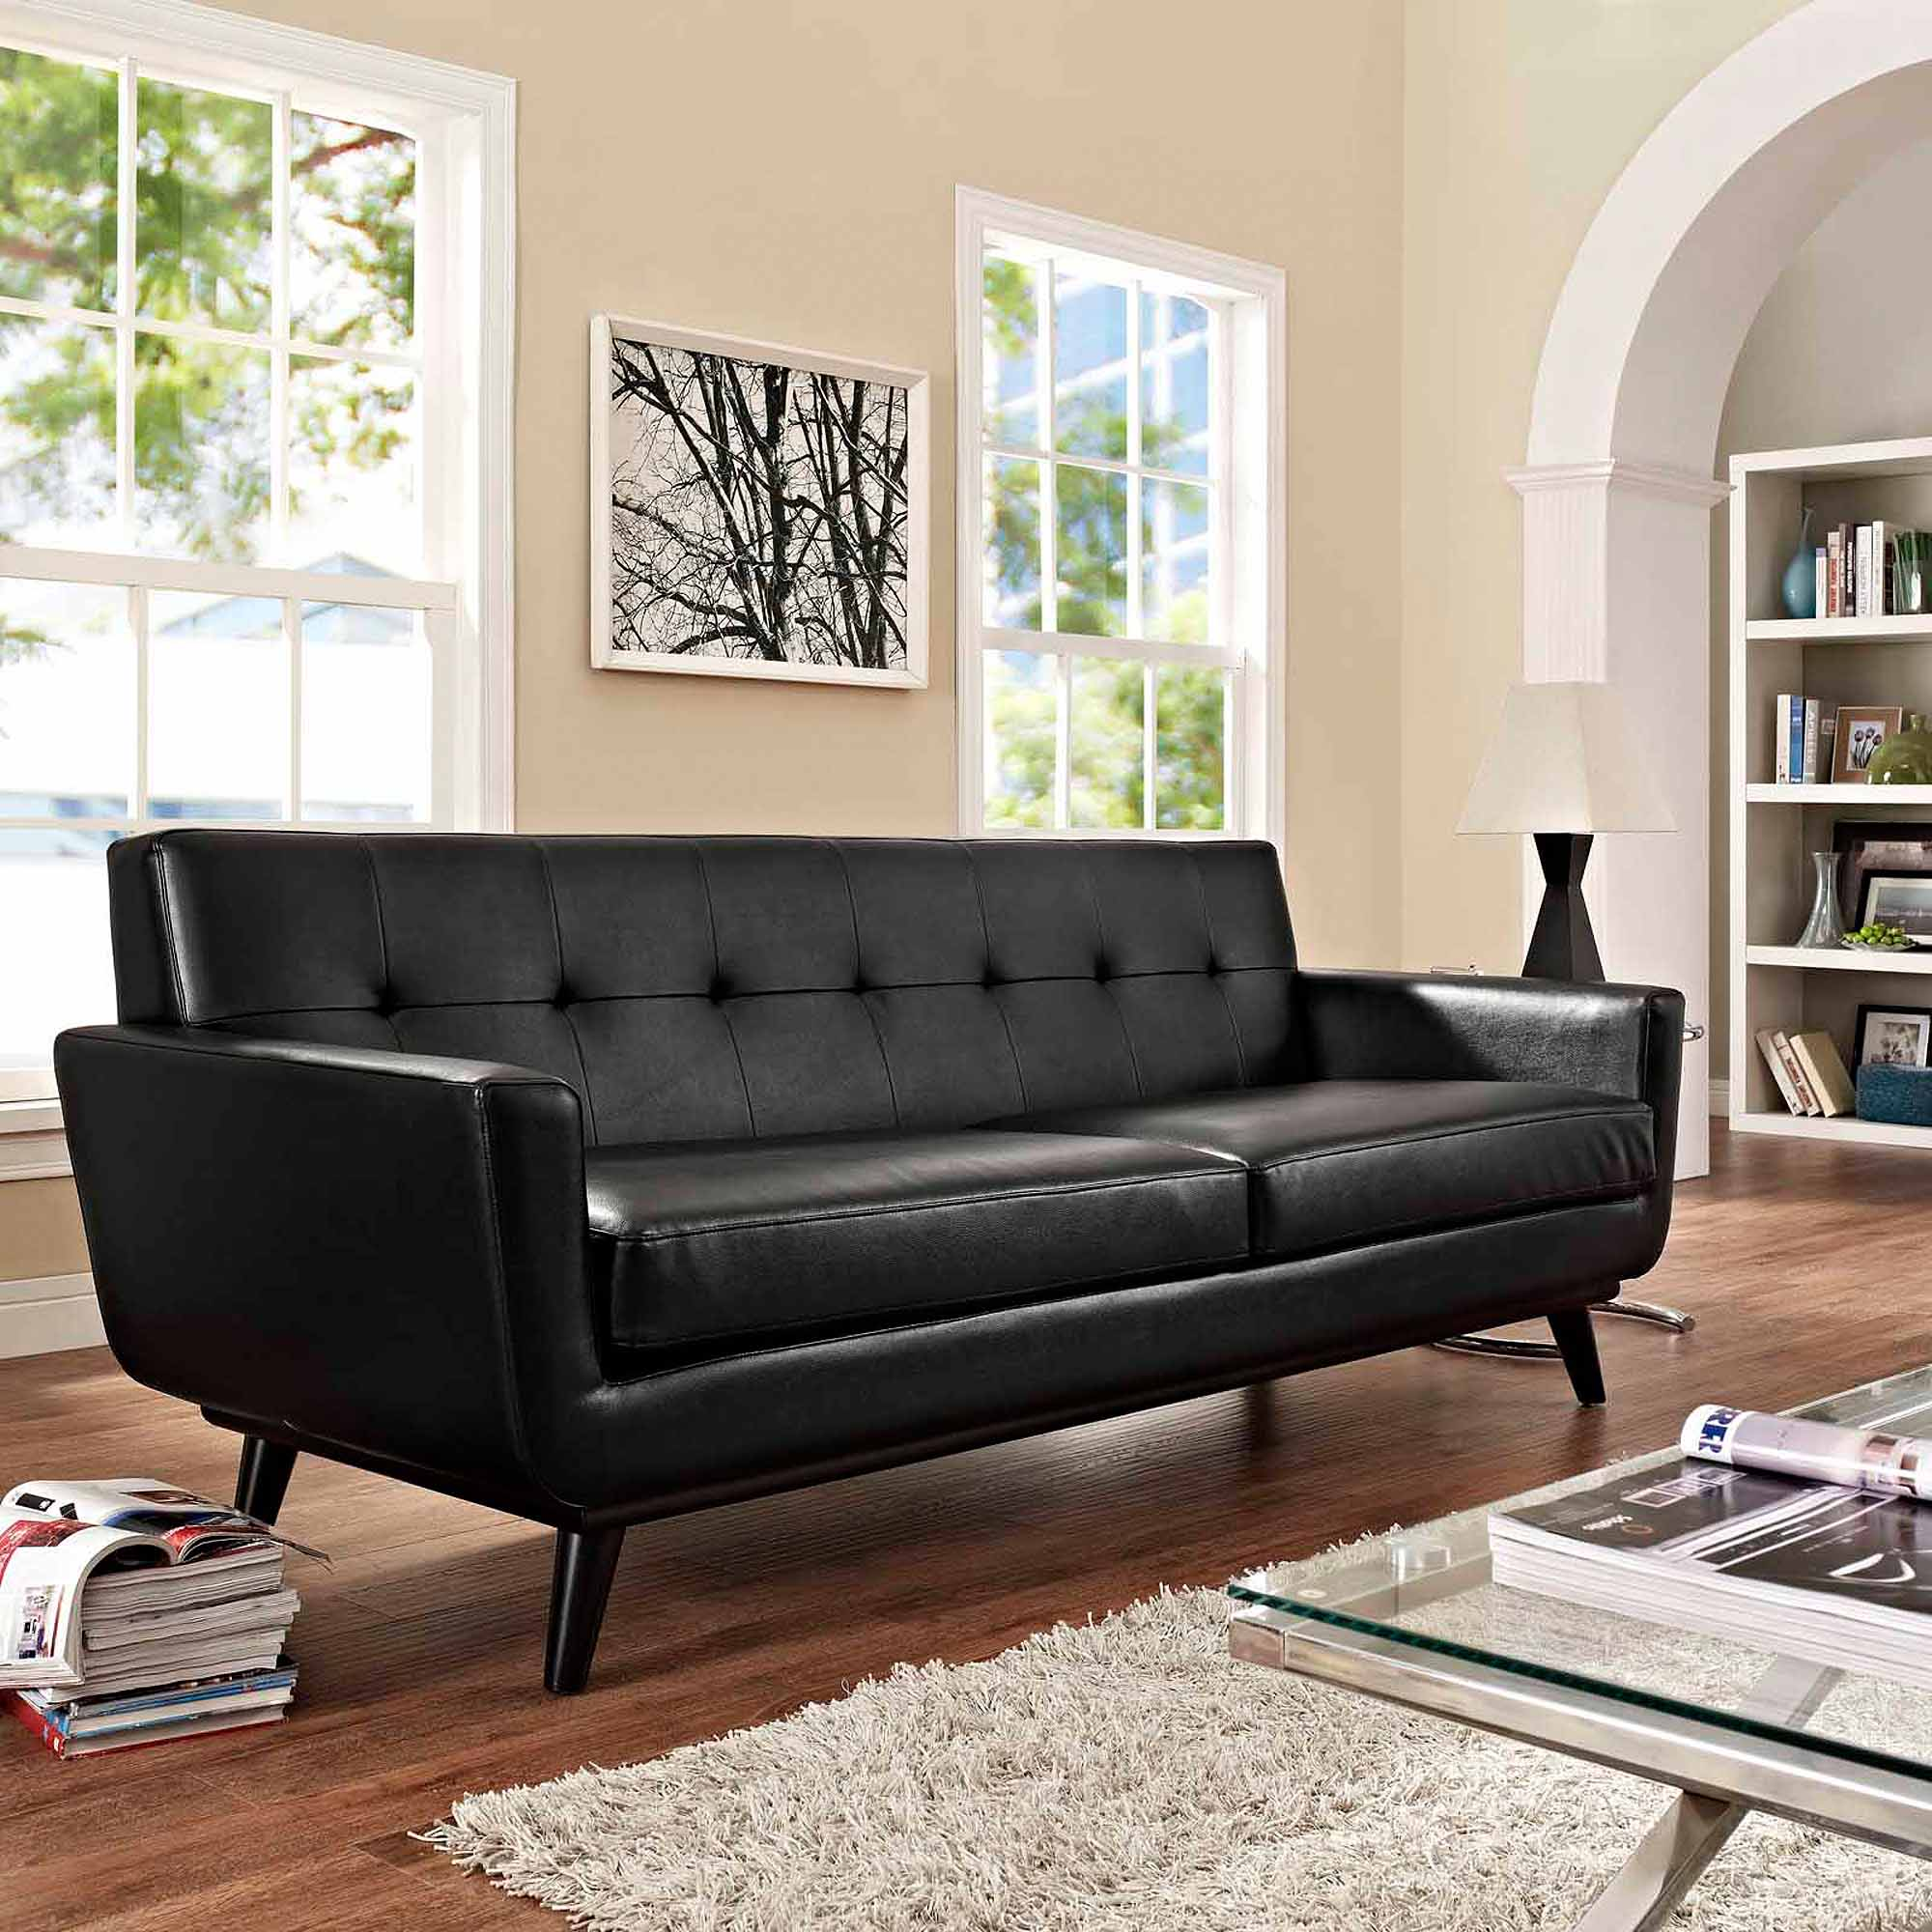 Modway Engage Bonded Leather Sofa With Wood Legs, Multiple Colors    Walmart.com